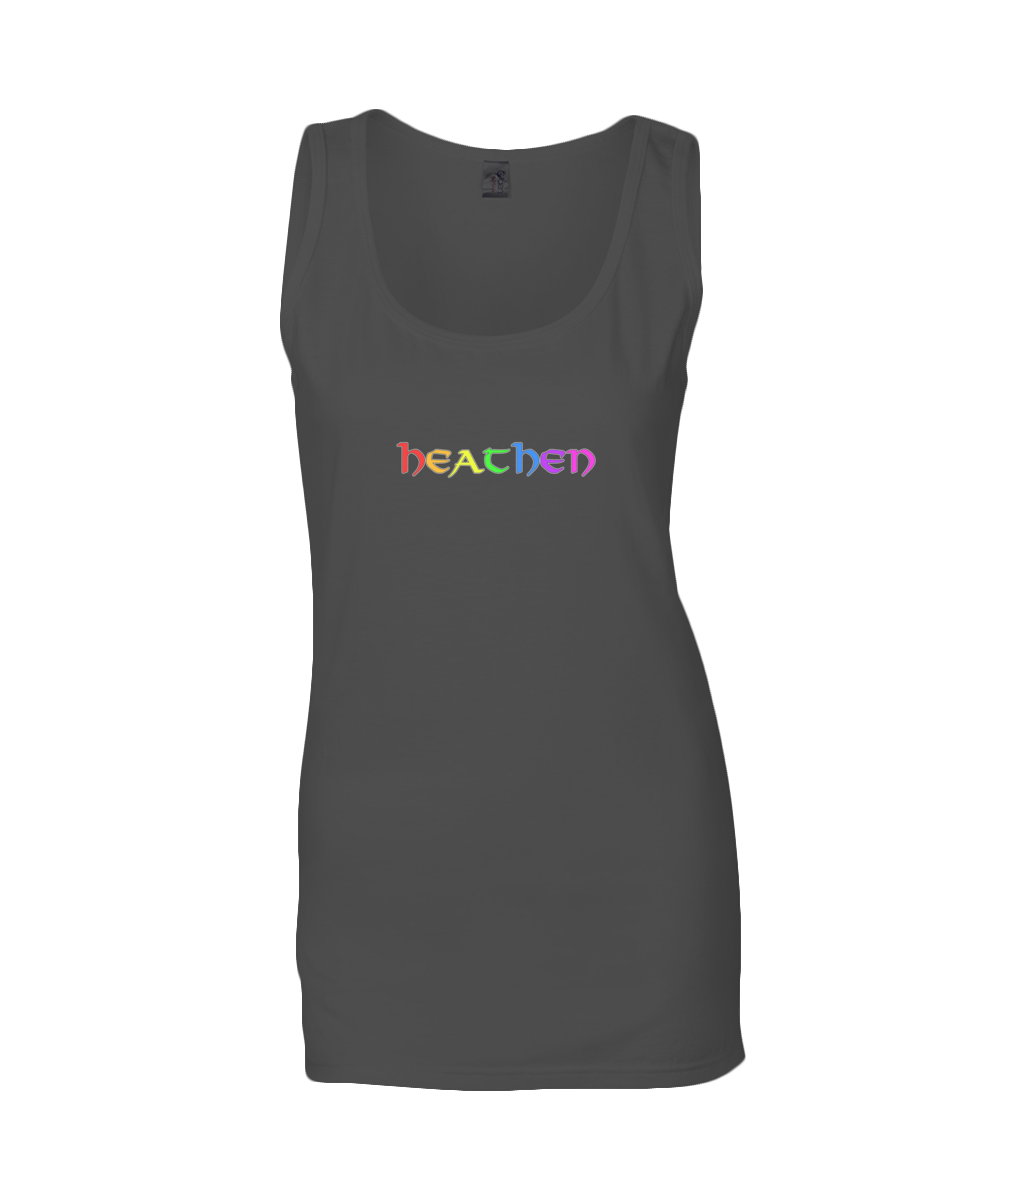 Asatru UK Heathen Pride Gildan Ladies SoftStyle® Tank Top Heathen Rainbow T Shirt